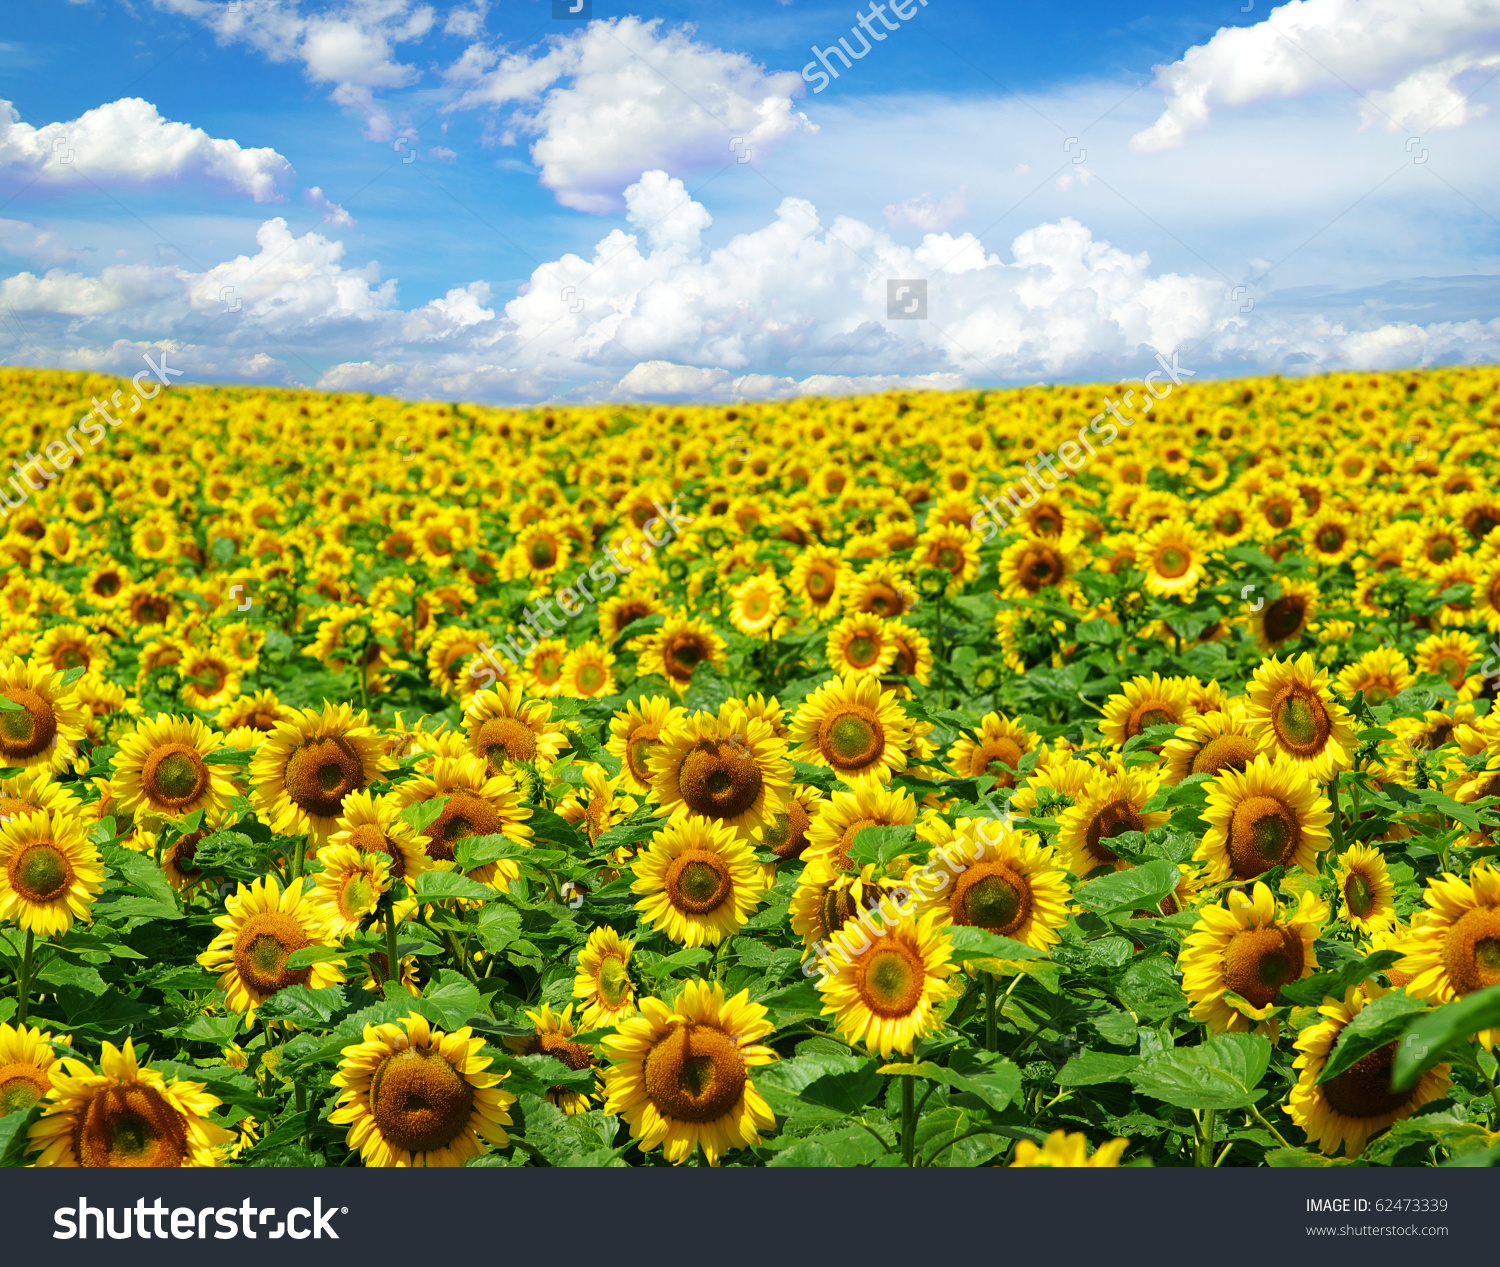 Field of sunflowers clipart 20 free Cliparts | Download ...